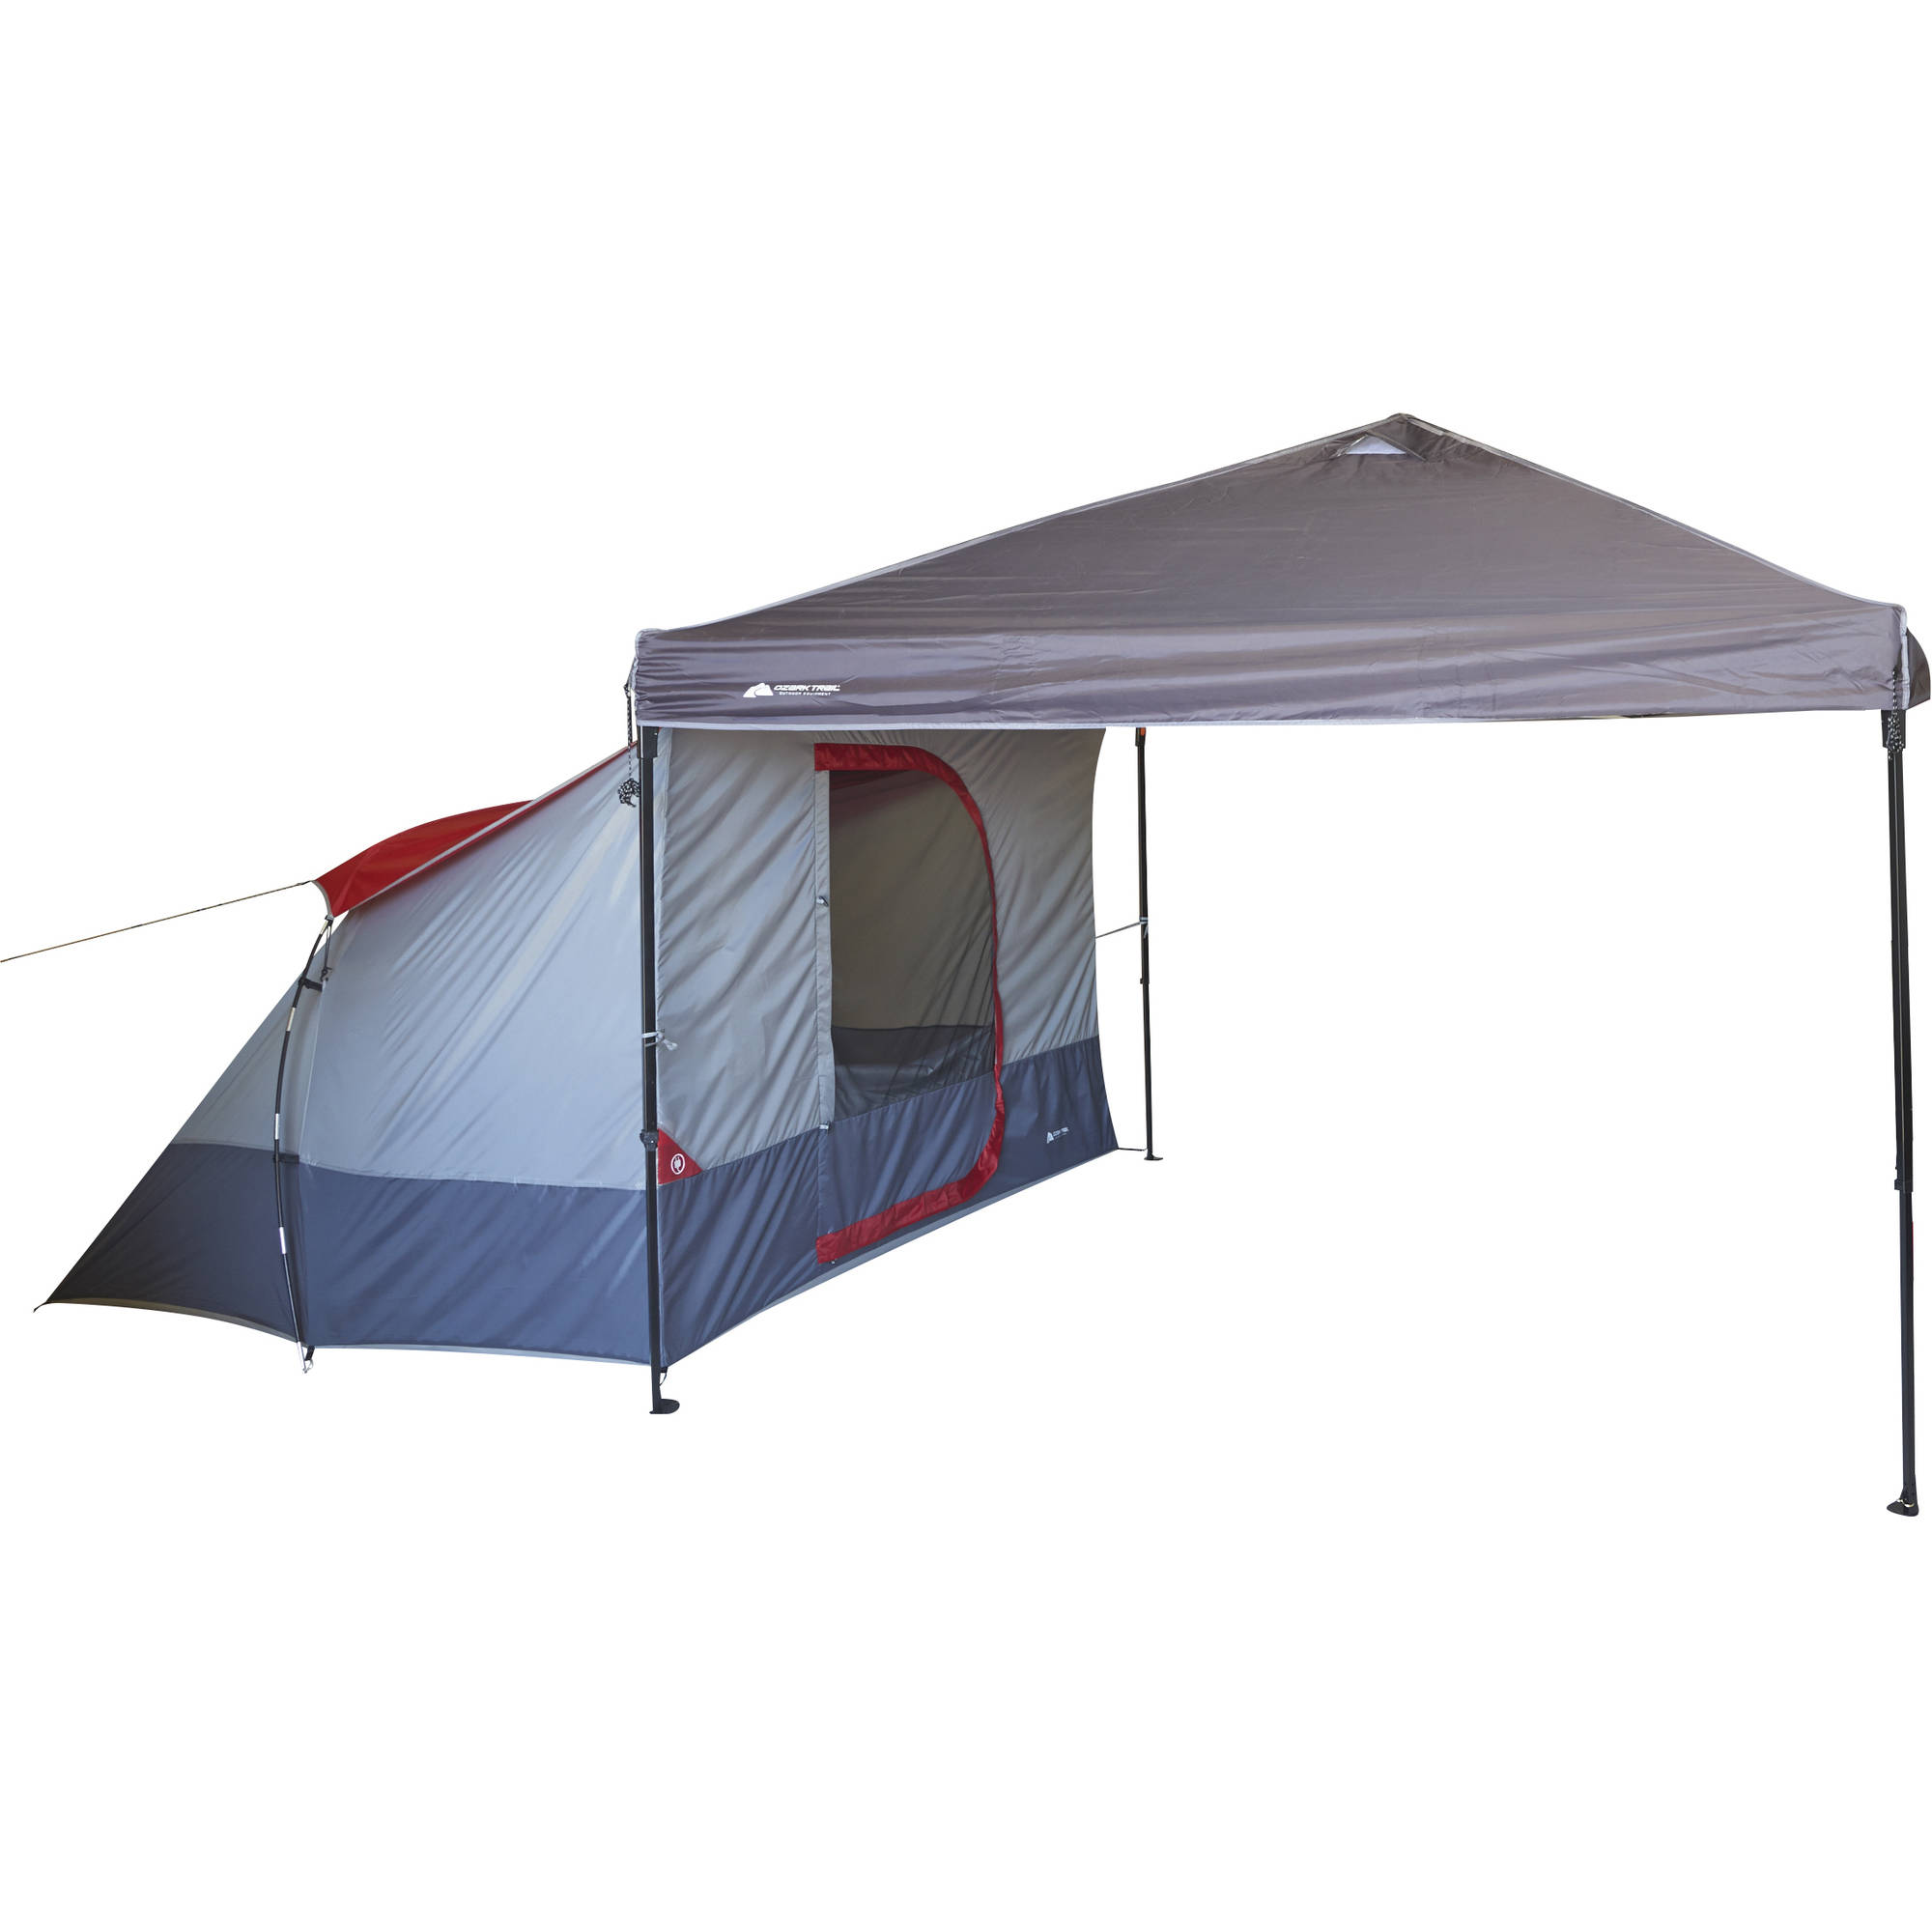 p and camper vaudedrivevan awnings drive tent driveaway awning floor vaude van by units removable protector amdro